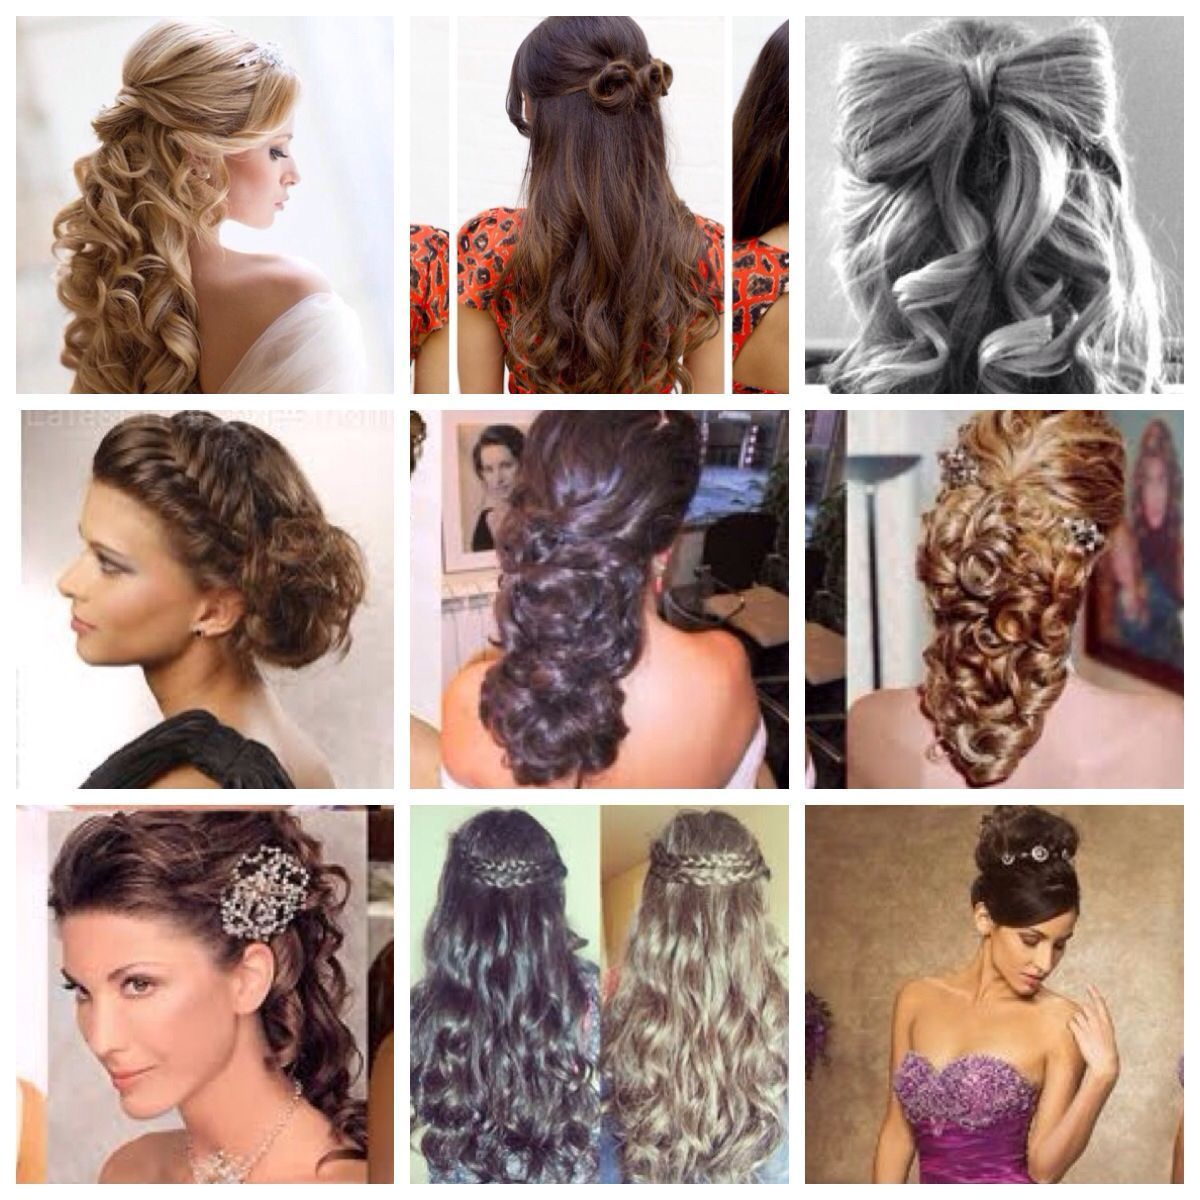 Nice hairstyles for quinceaneras quinceanera ideas pinterest